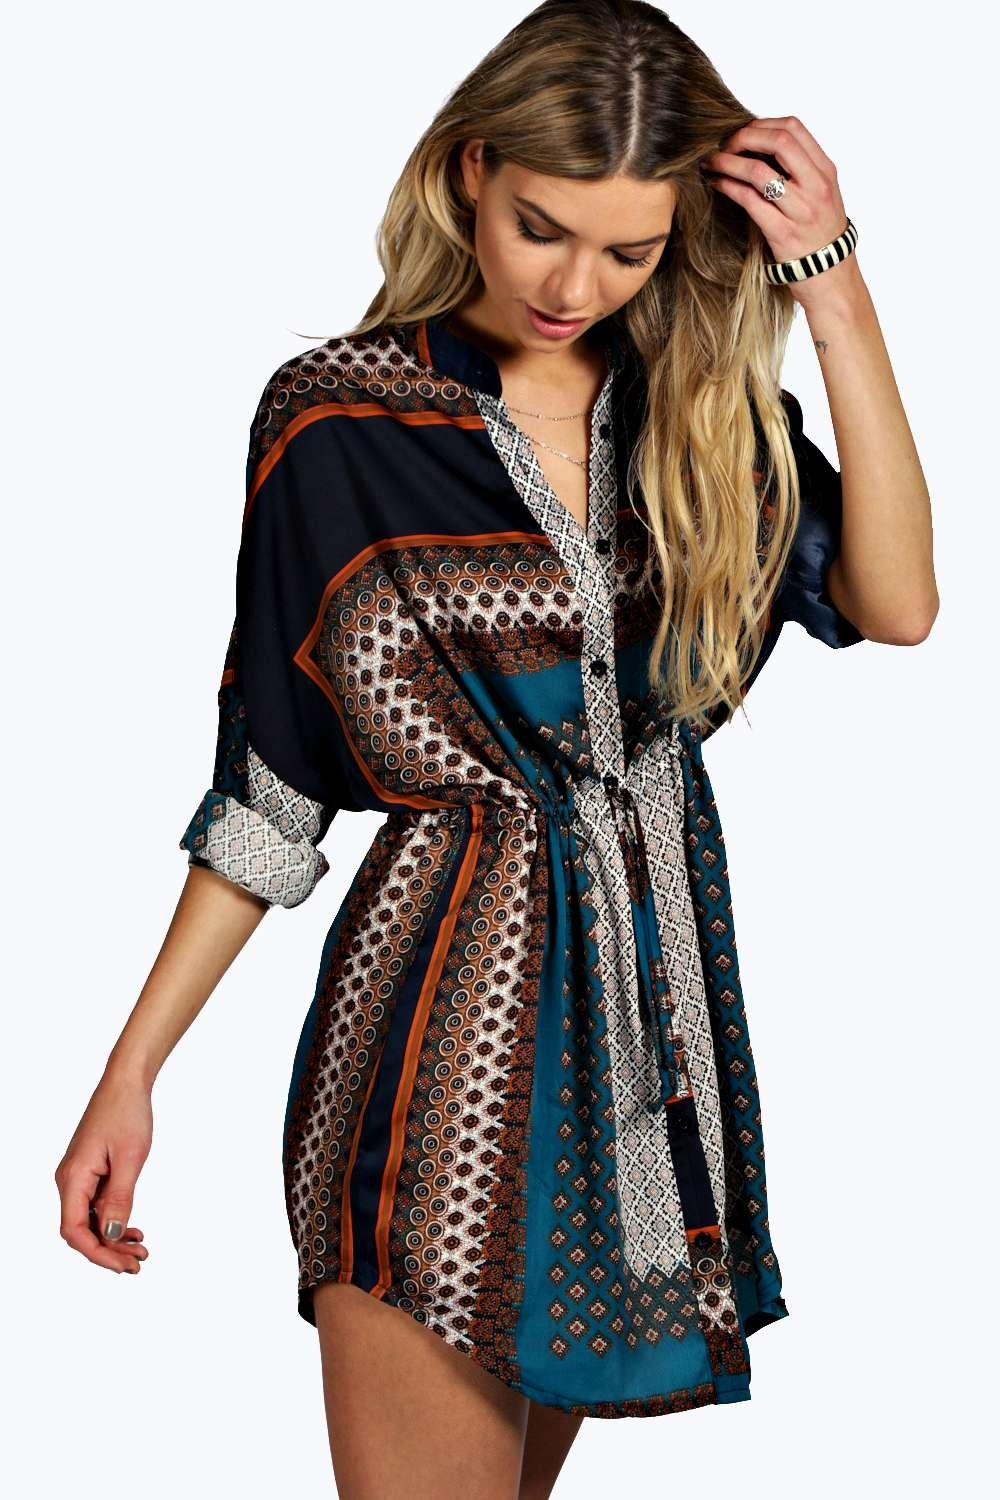 Shop clothes for women with wholesale cheap discount price and fast delivery, and find more womens plus size clothing & bulk women's clothes online with drop shipping.